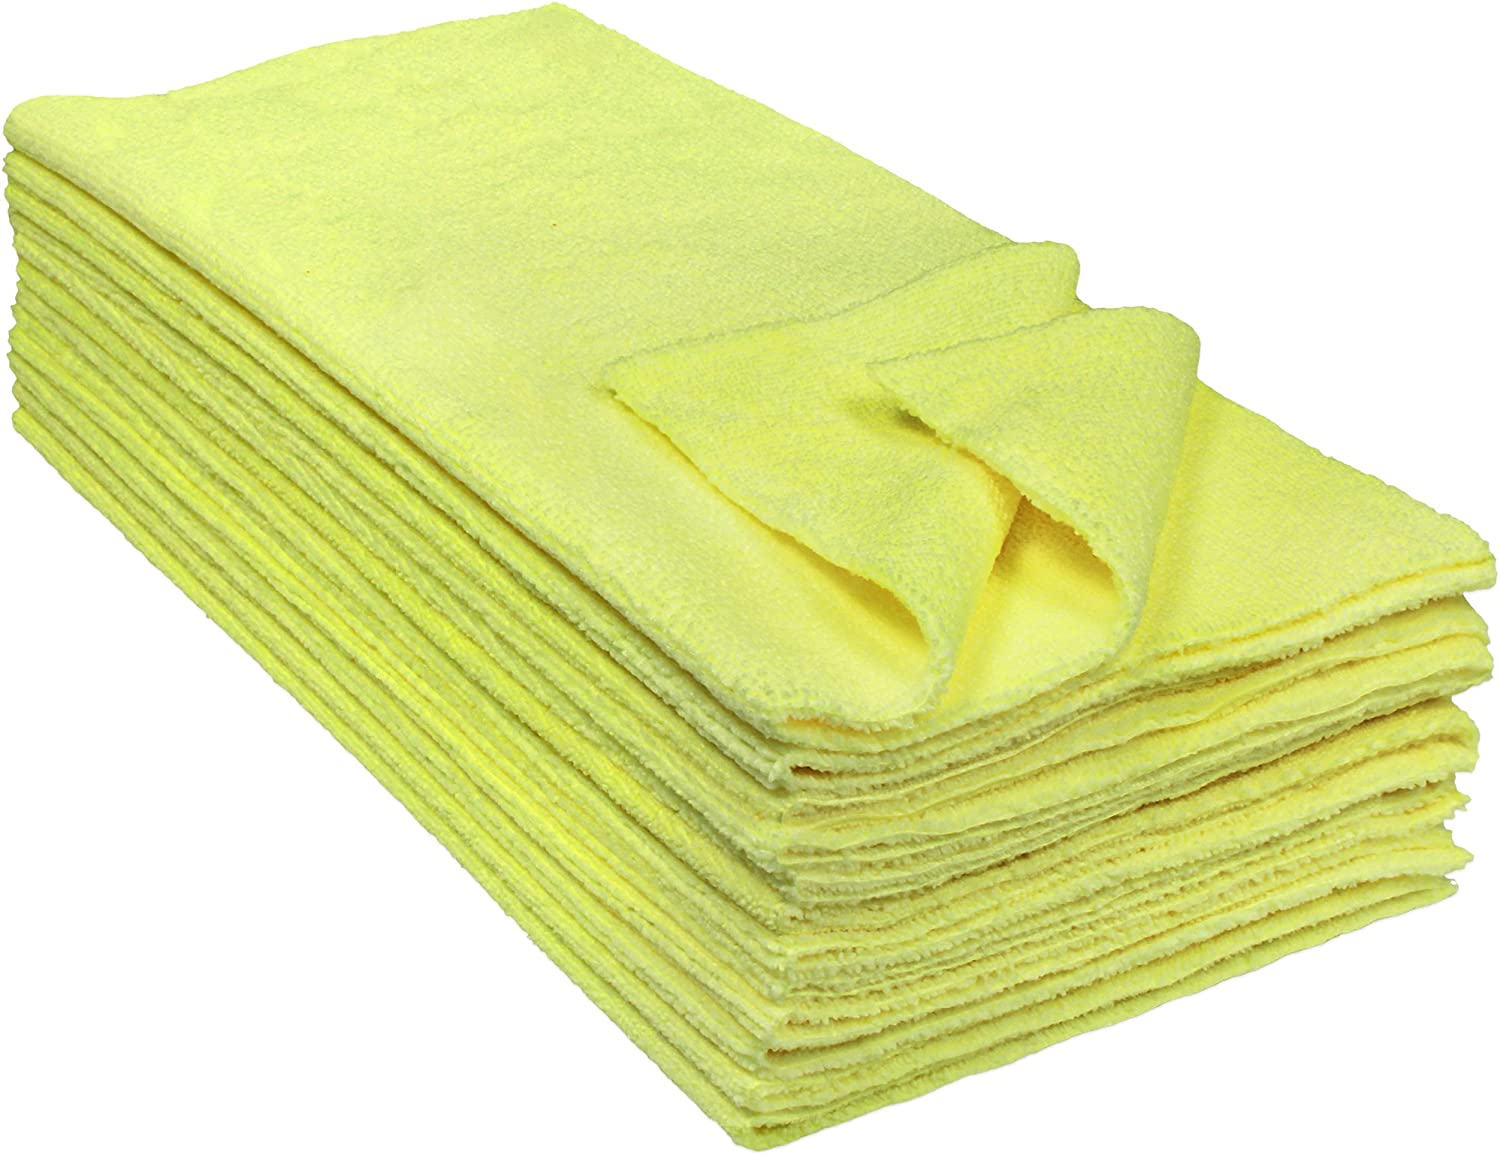 CleanAide Microfiber Ultrasonic Cut Cleaning 30 x 14in Towels 14 San Jose Super Special SALE held Mall